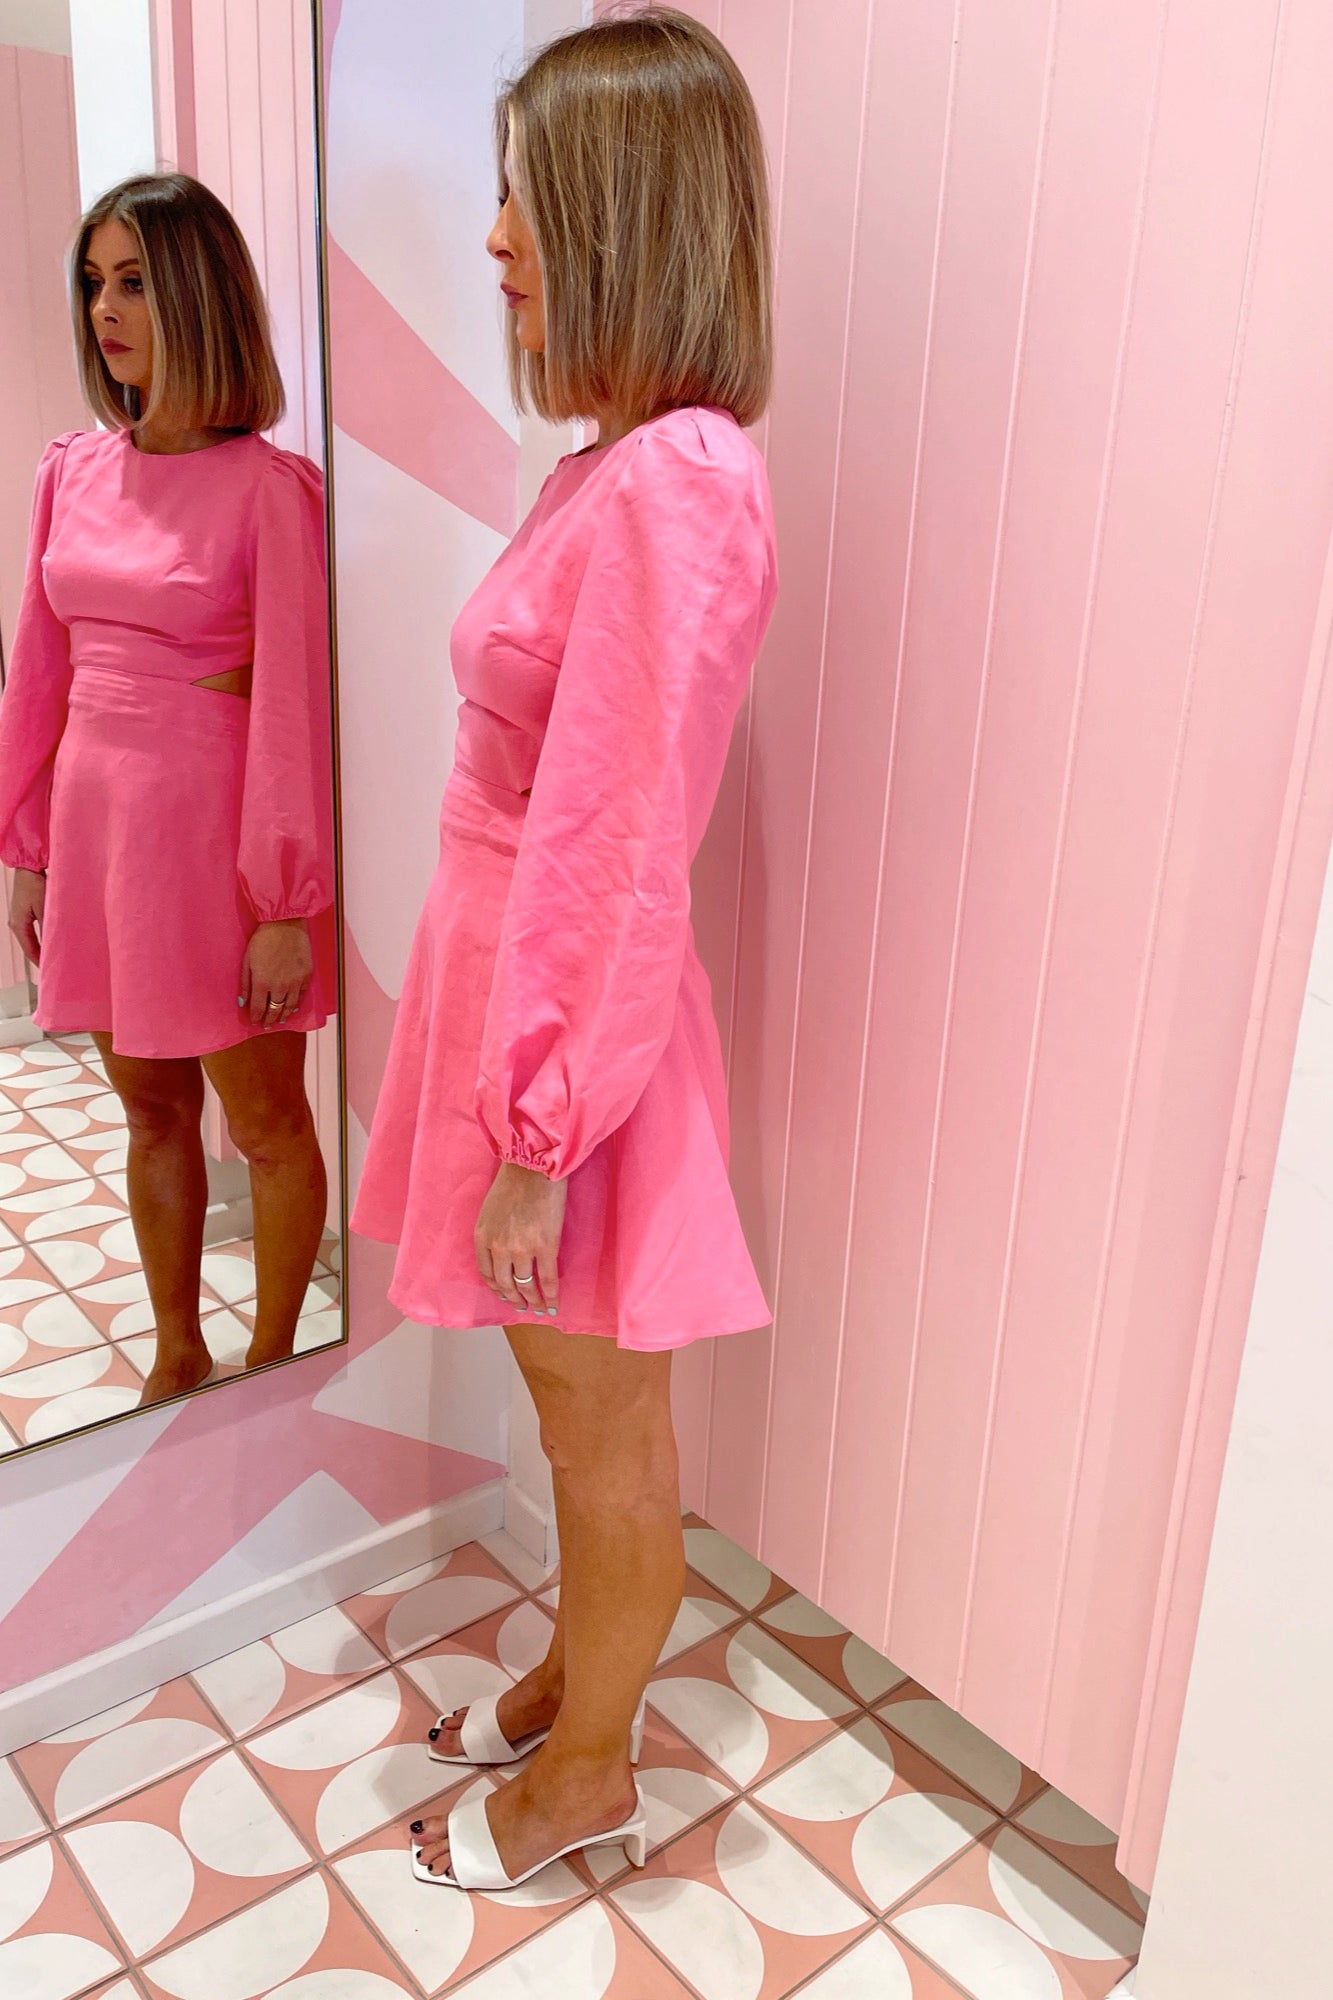 Porschia Dress - Bubblegum